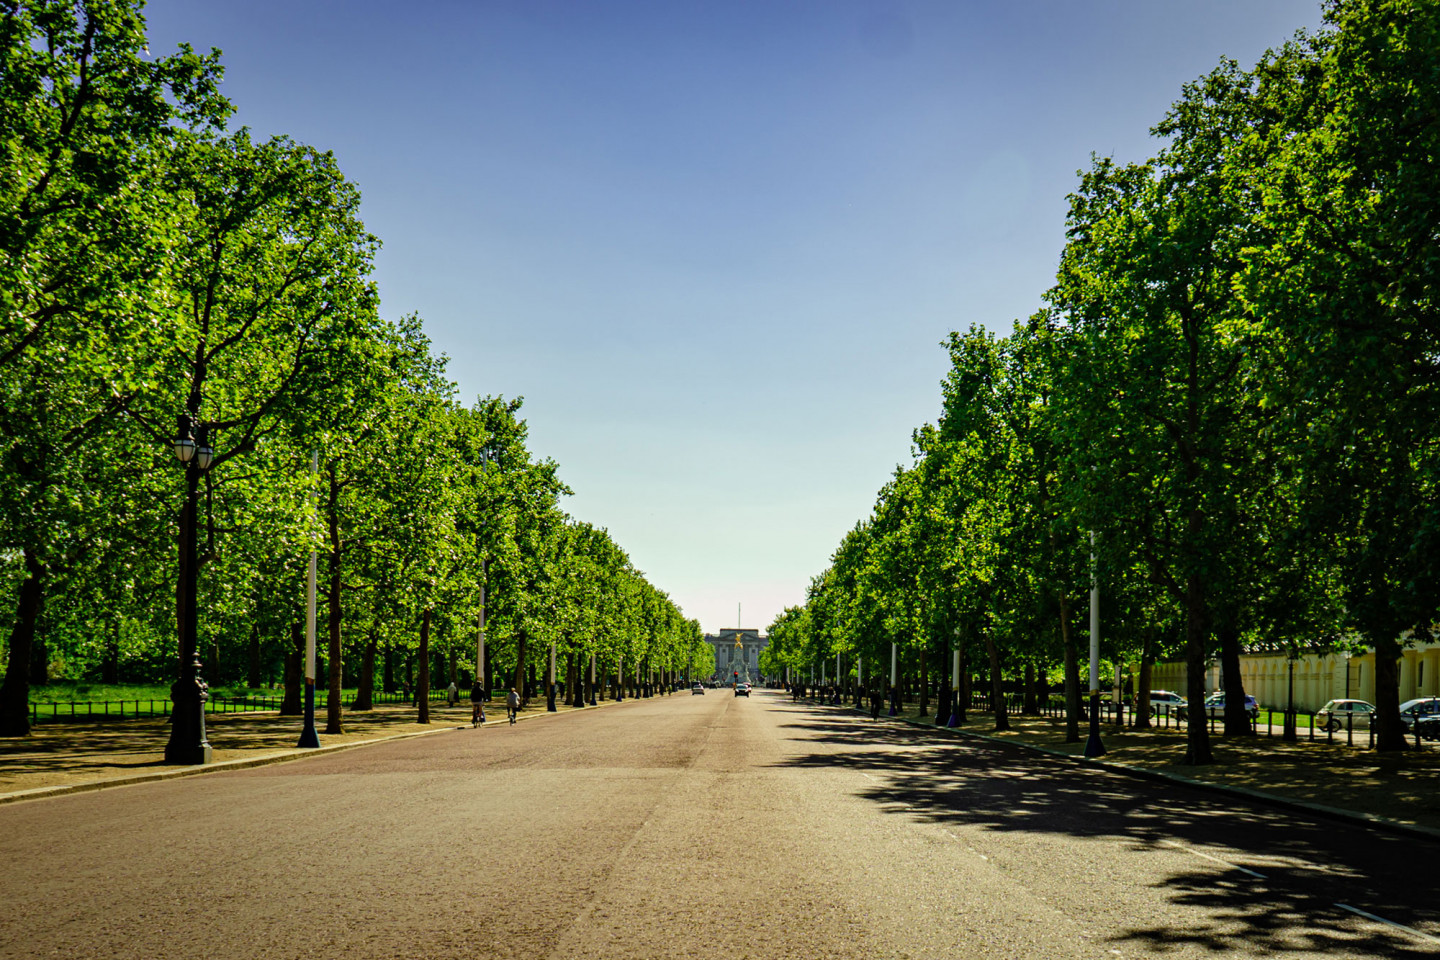 Looking down the Mall towards Buckingham Palace May 12, 8.50am © Richard Lawrence